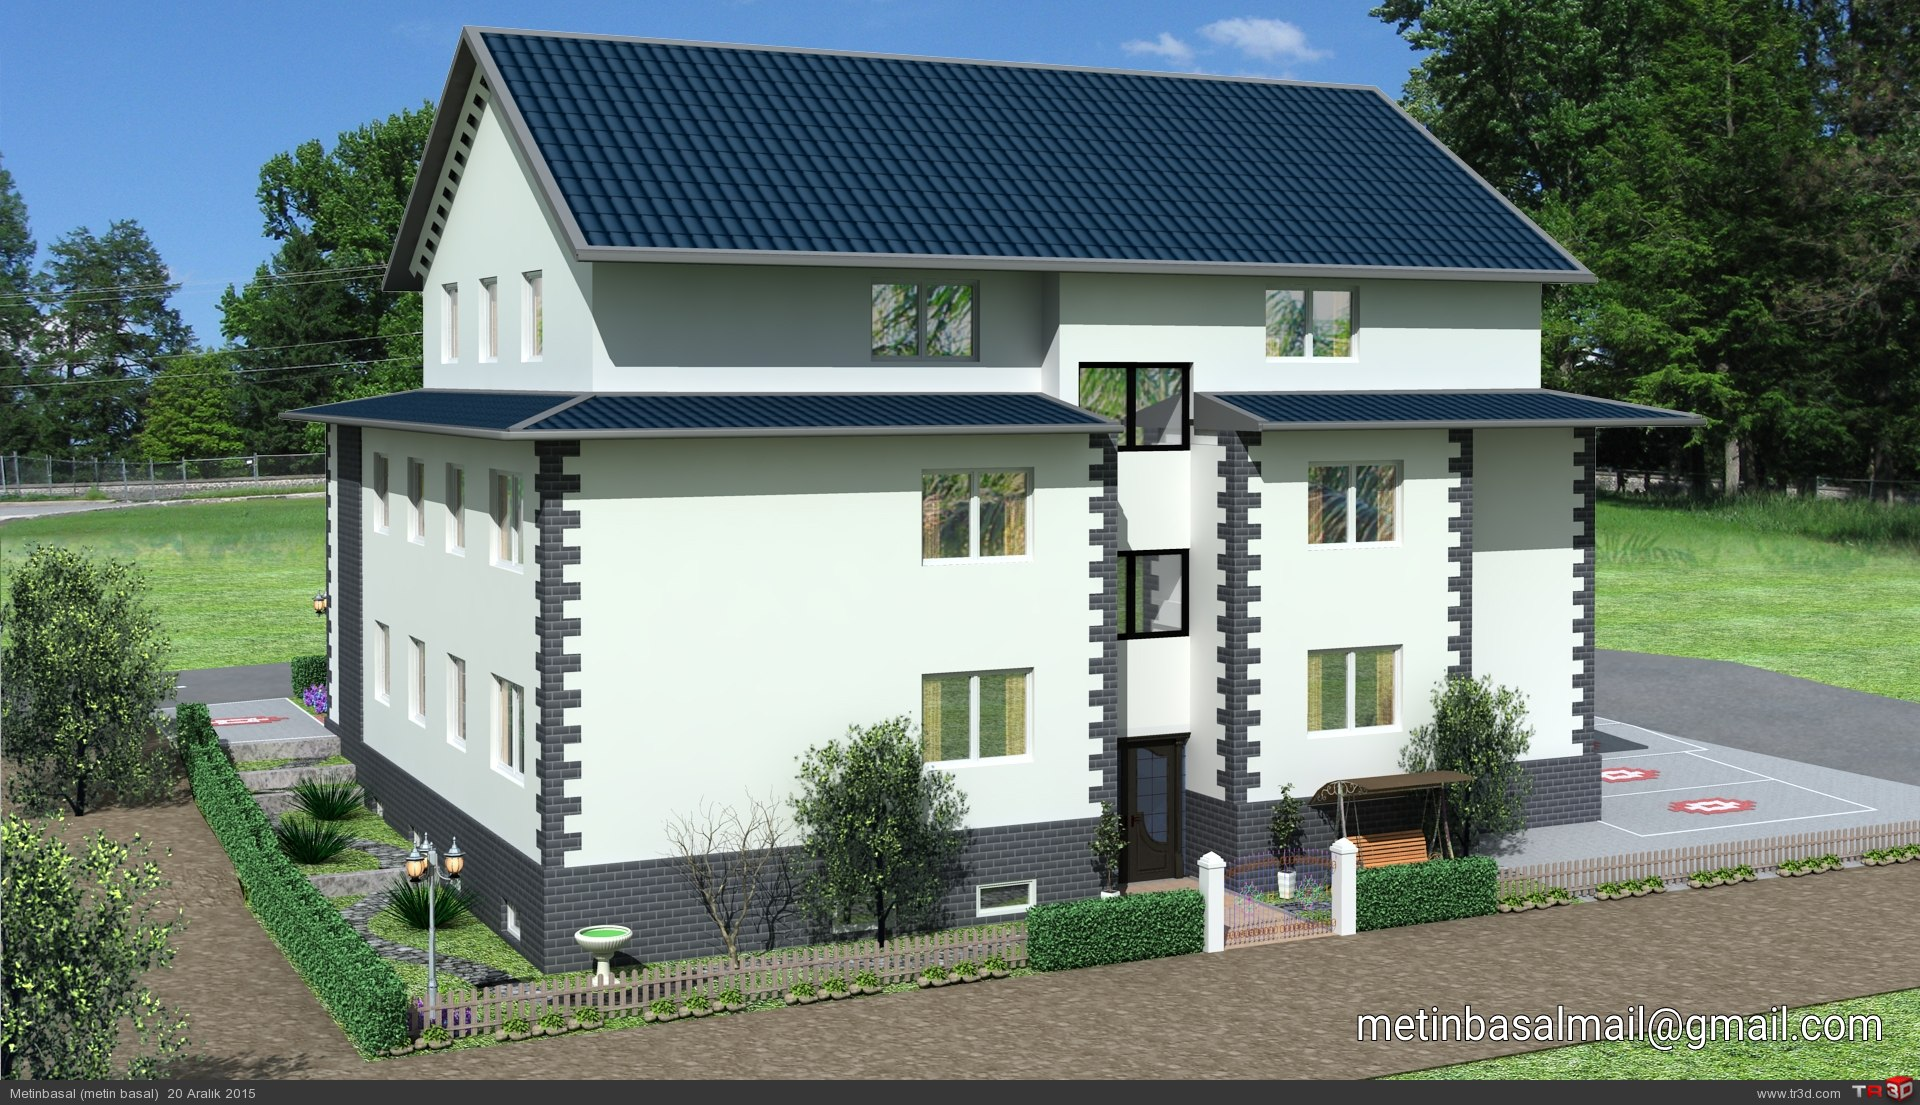 Germany villa modeling and design 3